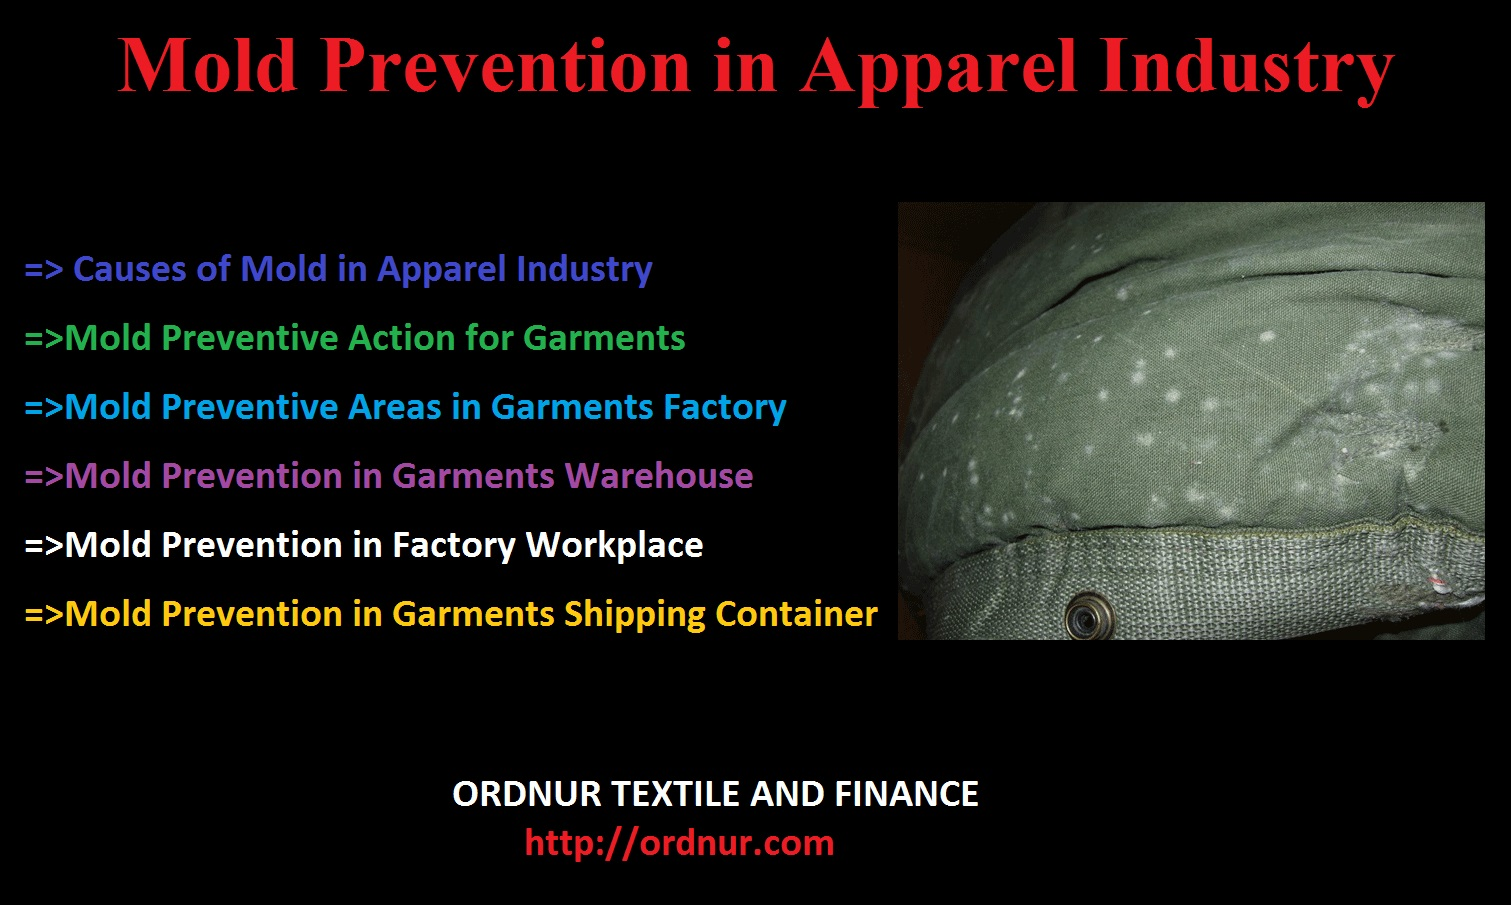 Mold Prevention in Apparel Industry - ORDNUR TEXTILE AND FINANCE